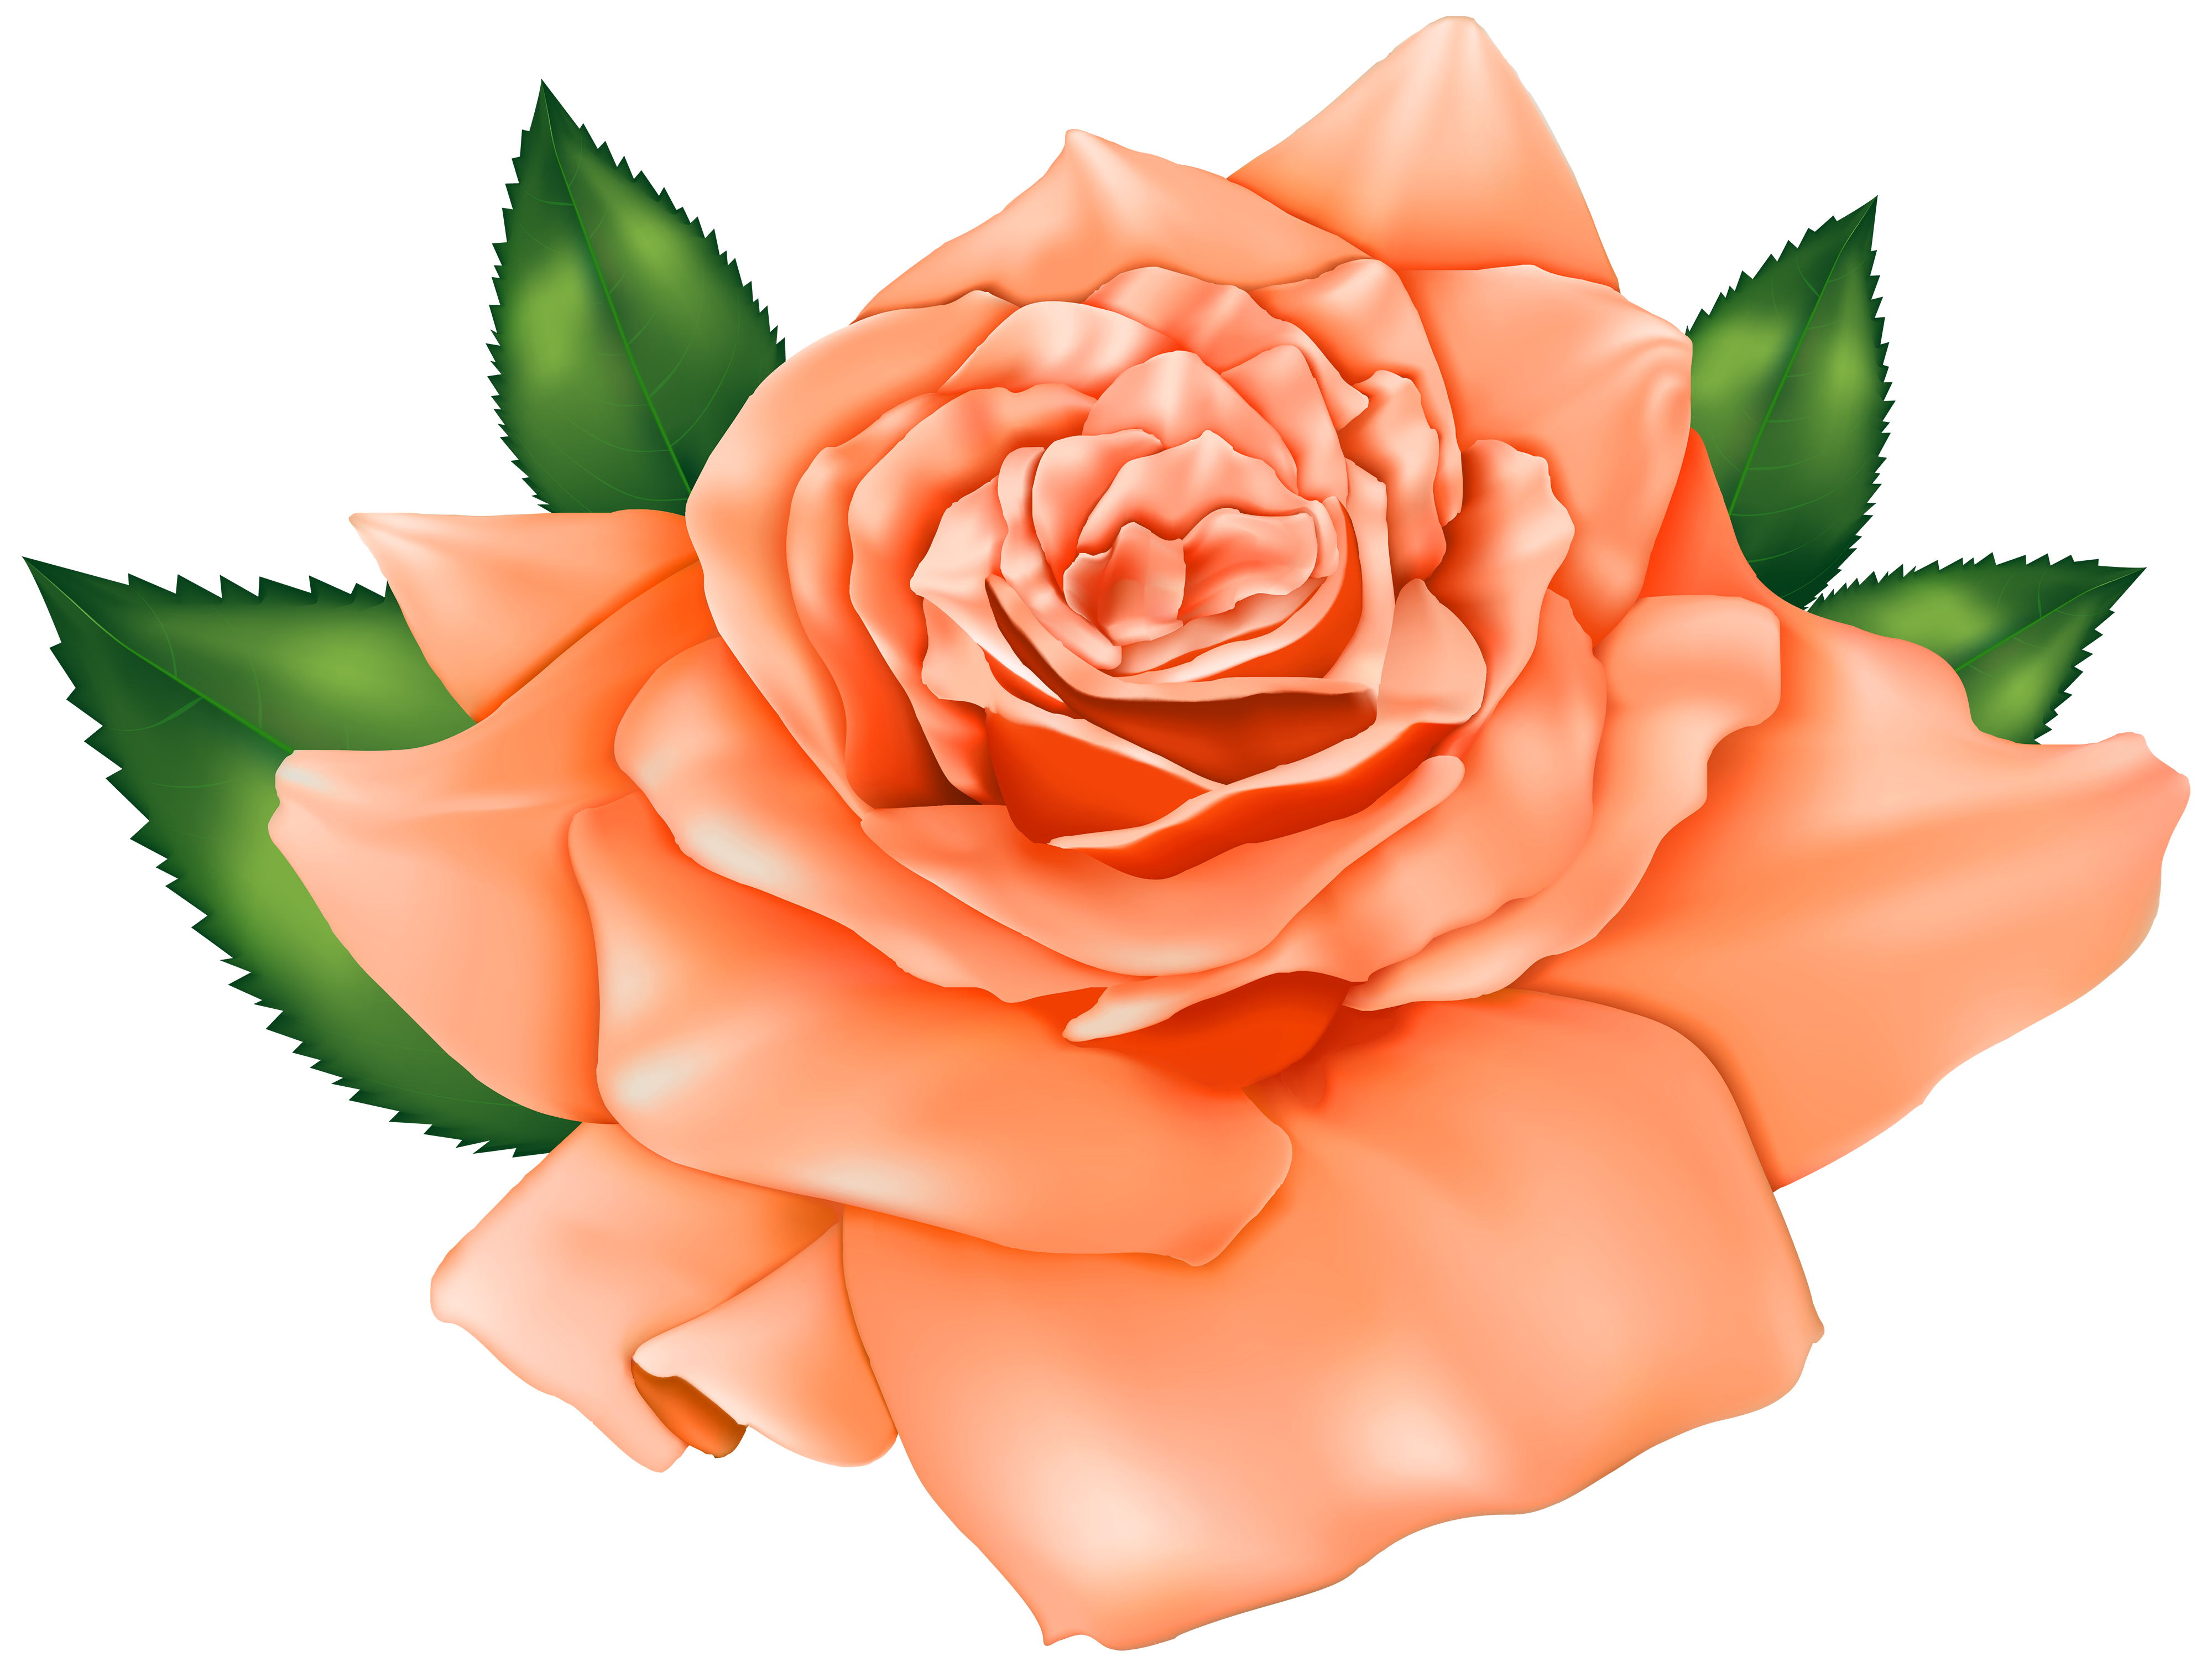 Peach flowers png. Beautiful orange rose clipart